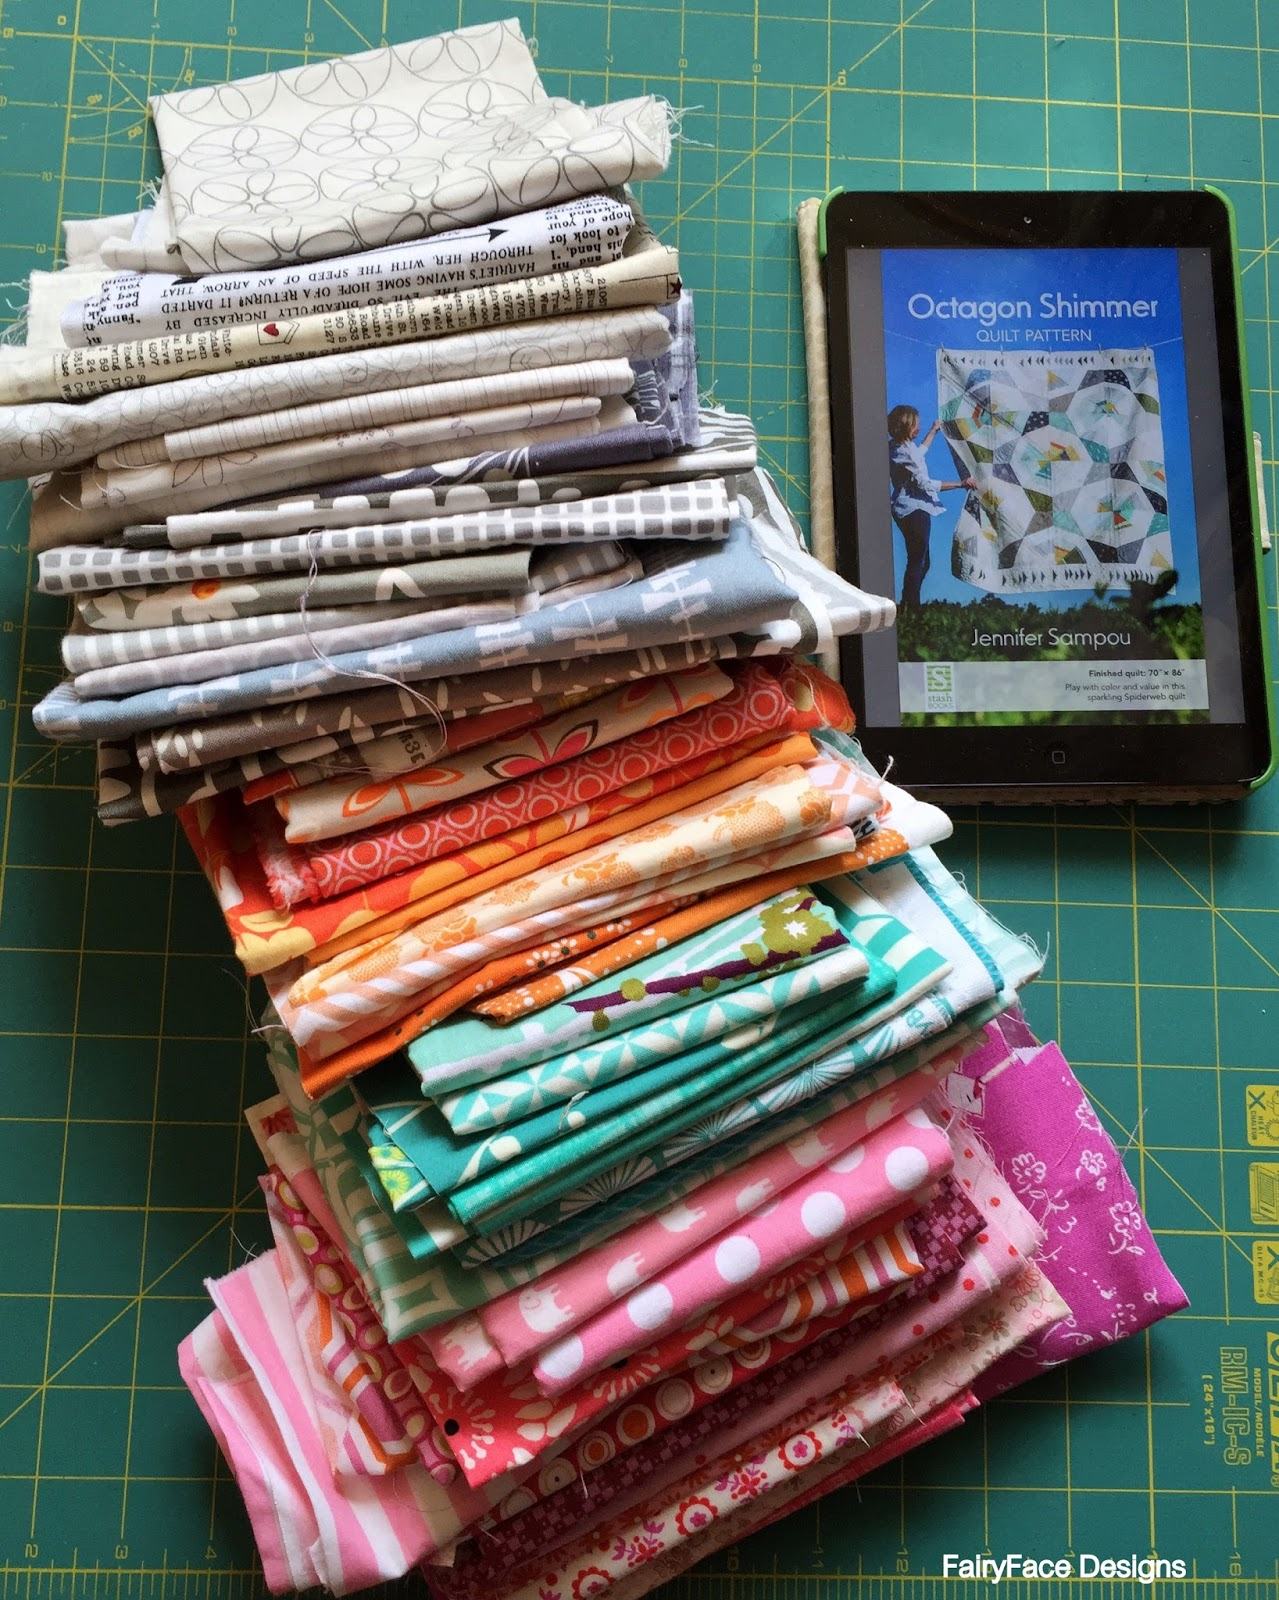 FairyFace Designs : quilting and sewing blogs - Adamdwight.com